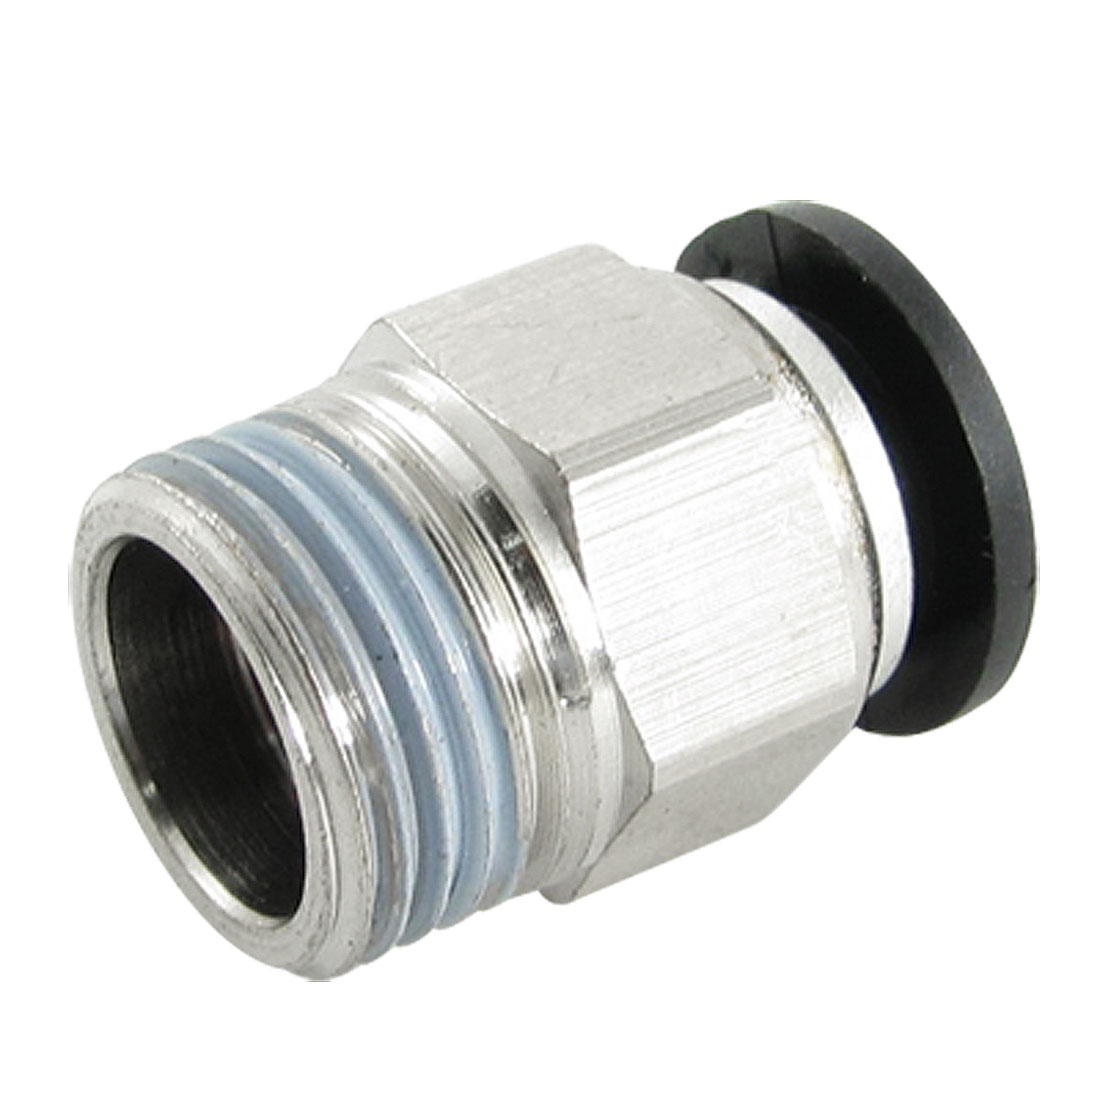 10mm x 16mm Pneumatic Tube Push in Connect Thread Quick Fittings